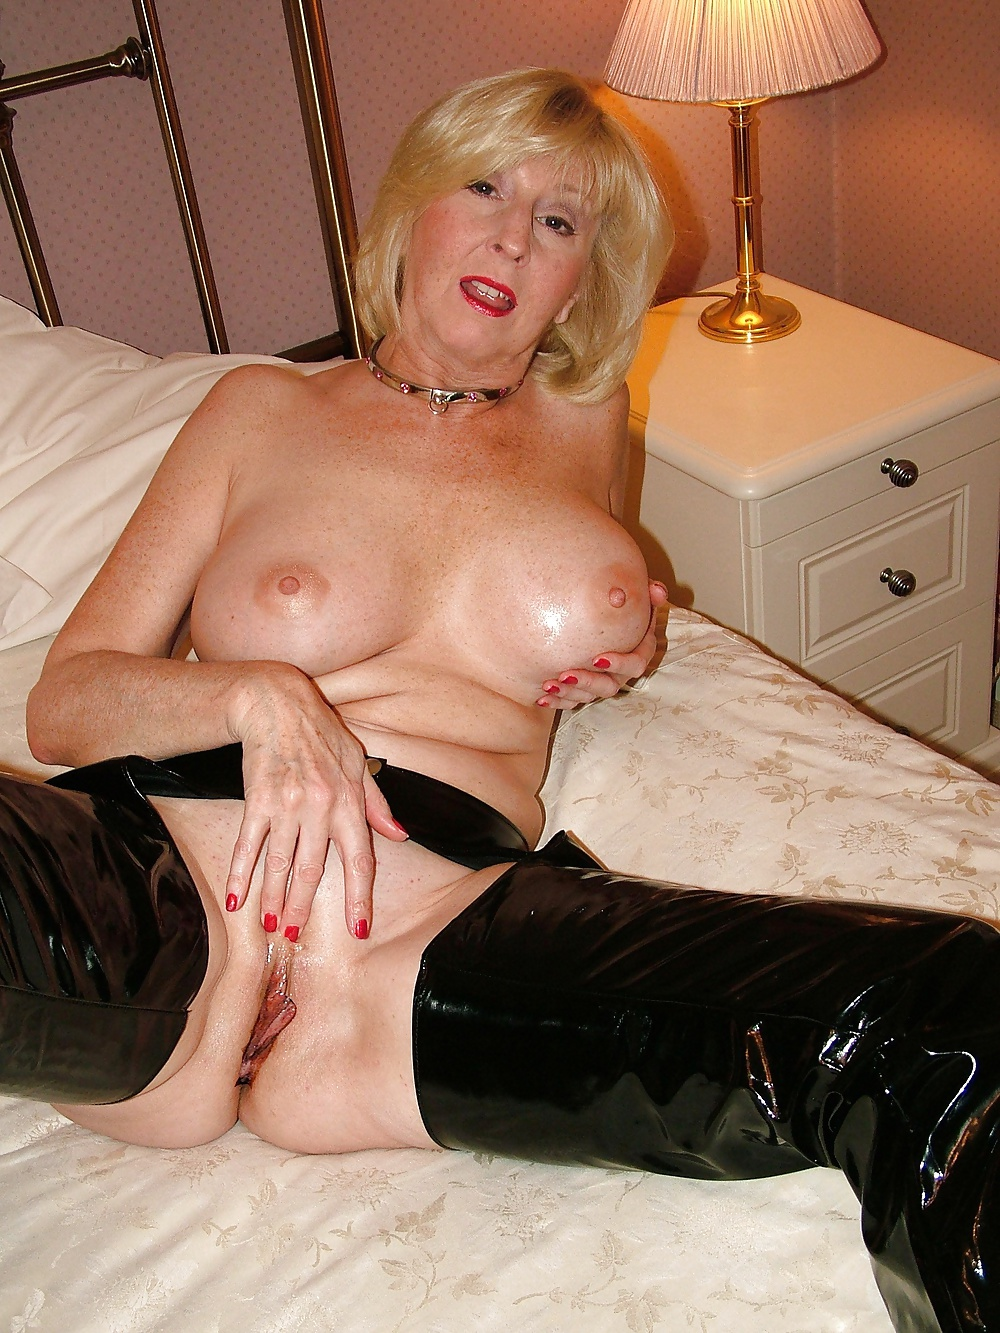 over old women porn gallery